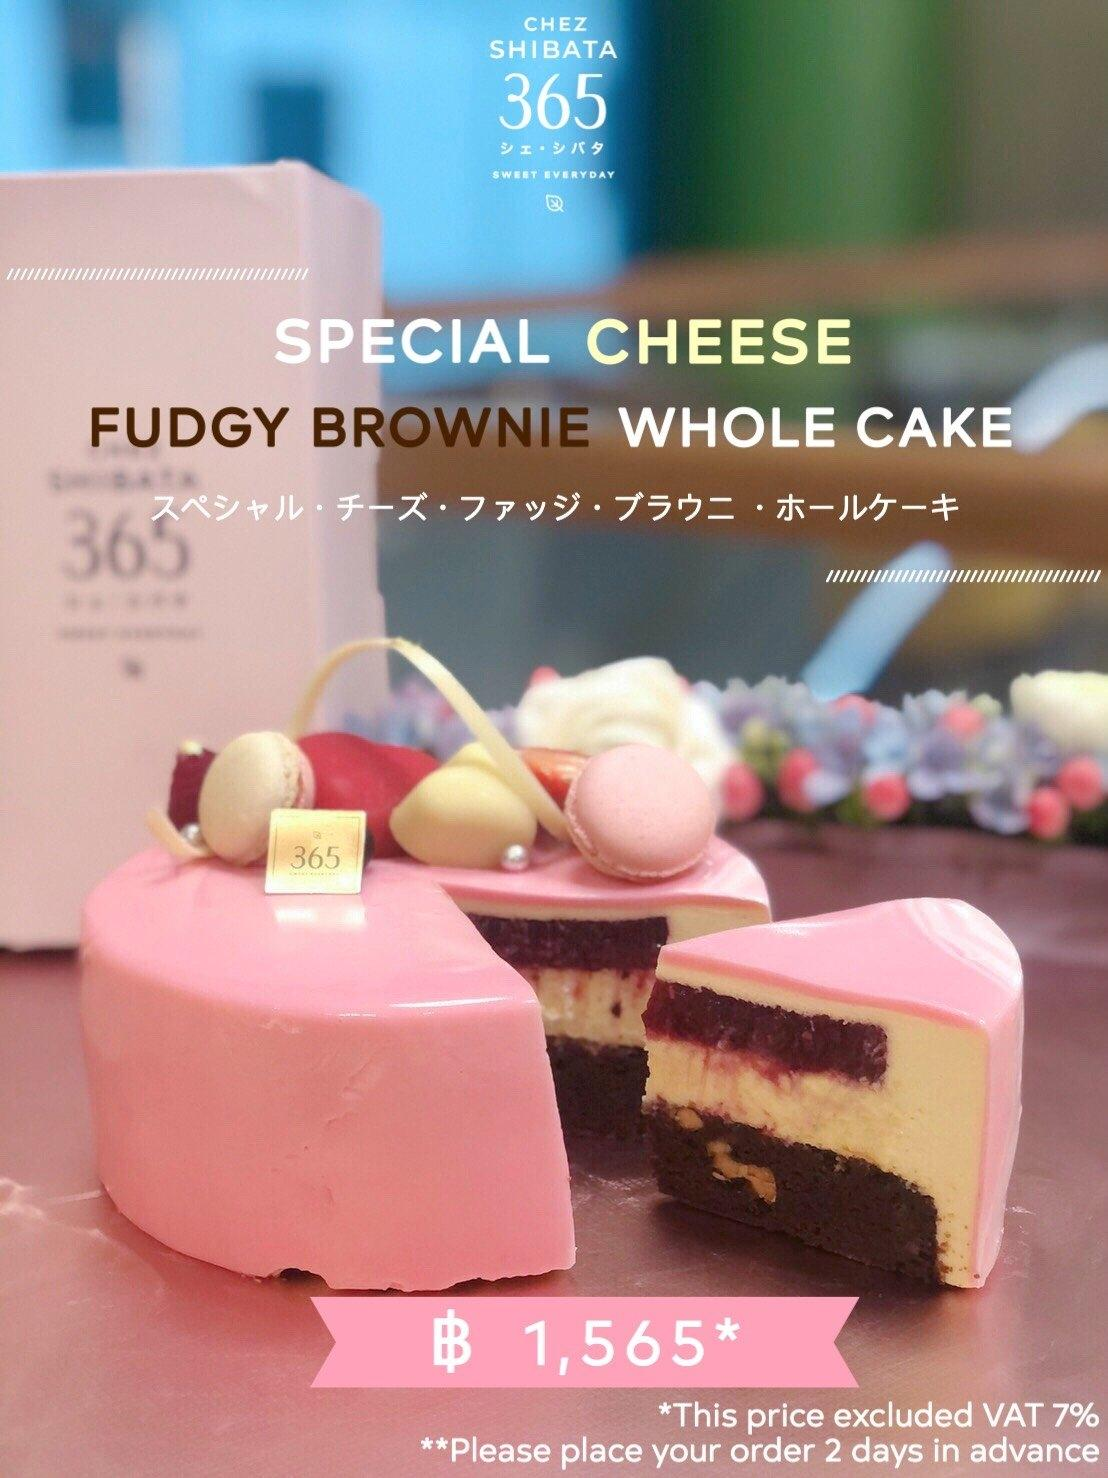 Special Cheese Fudge Brownie Whole cake スペシャル・チーズ・ファッジ・ブラウニー ホールケーキ